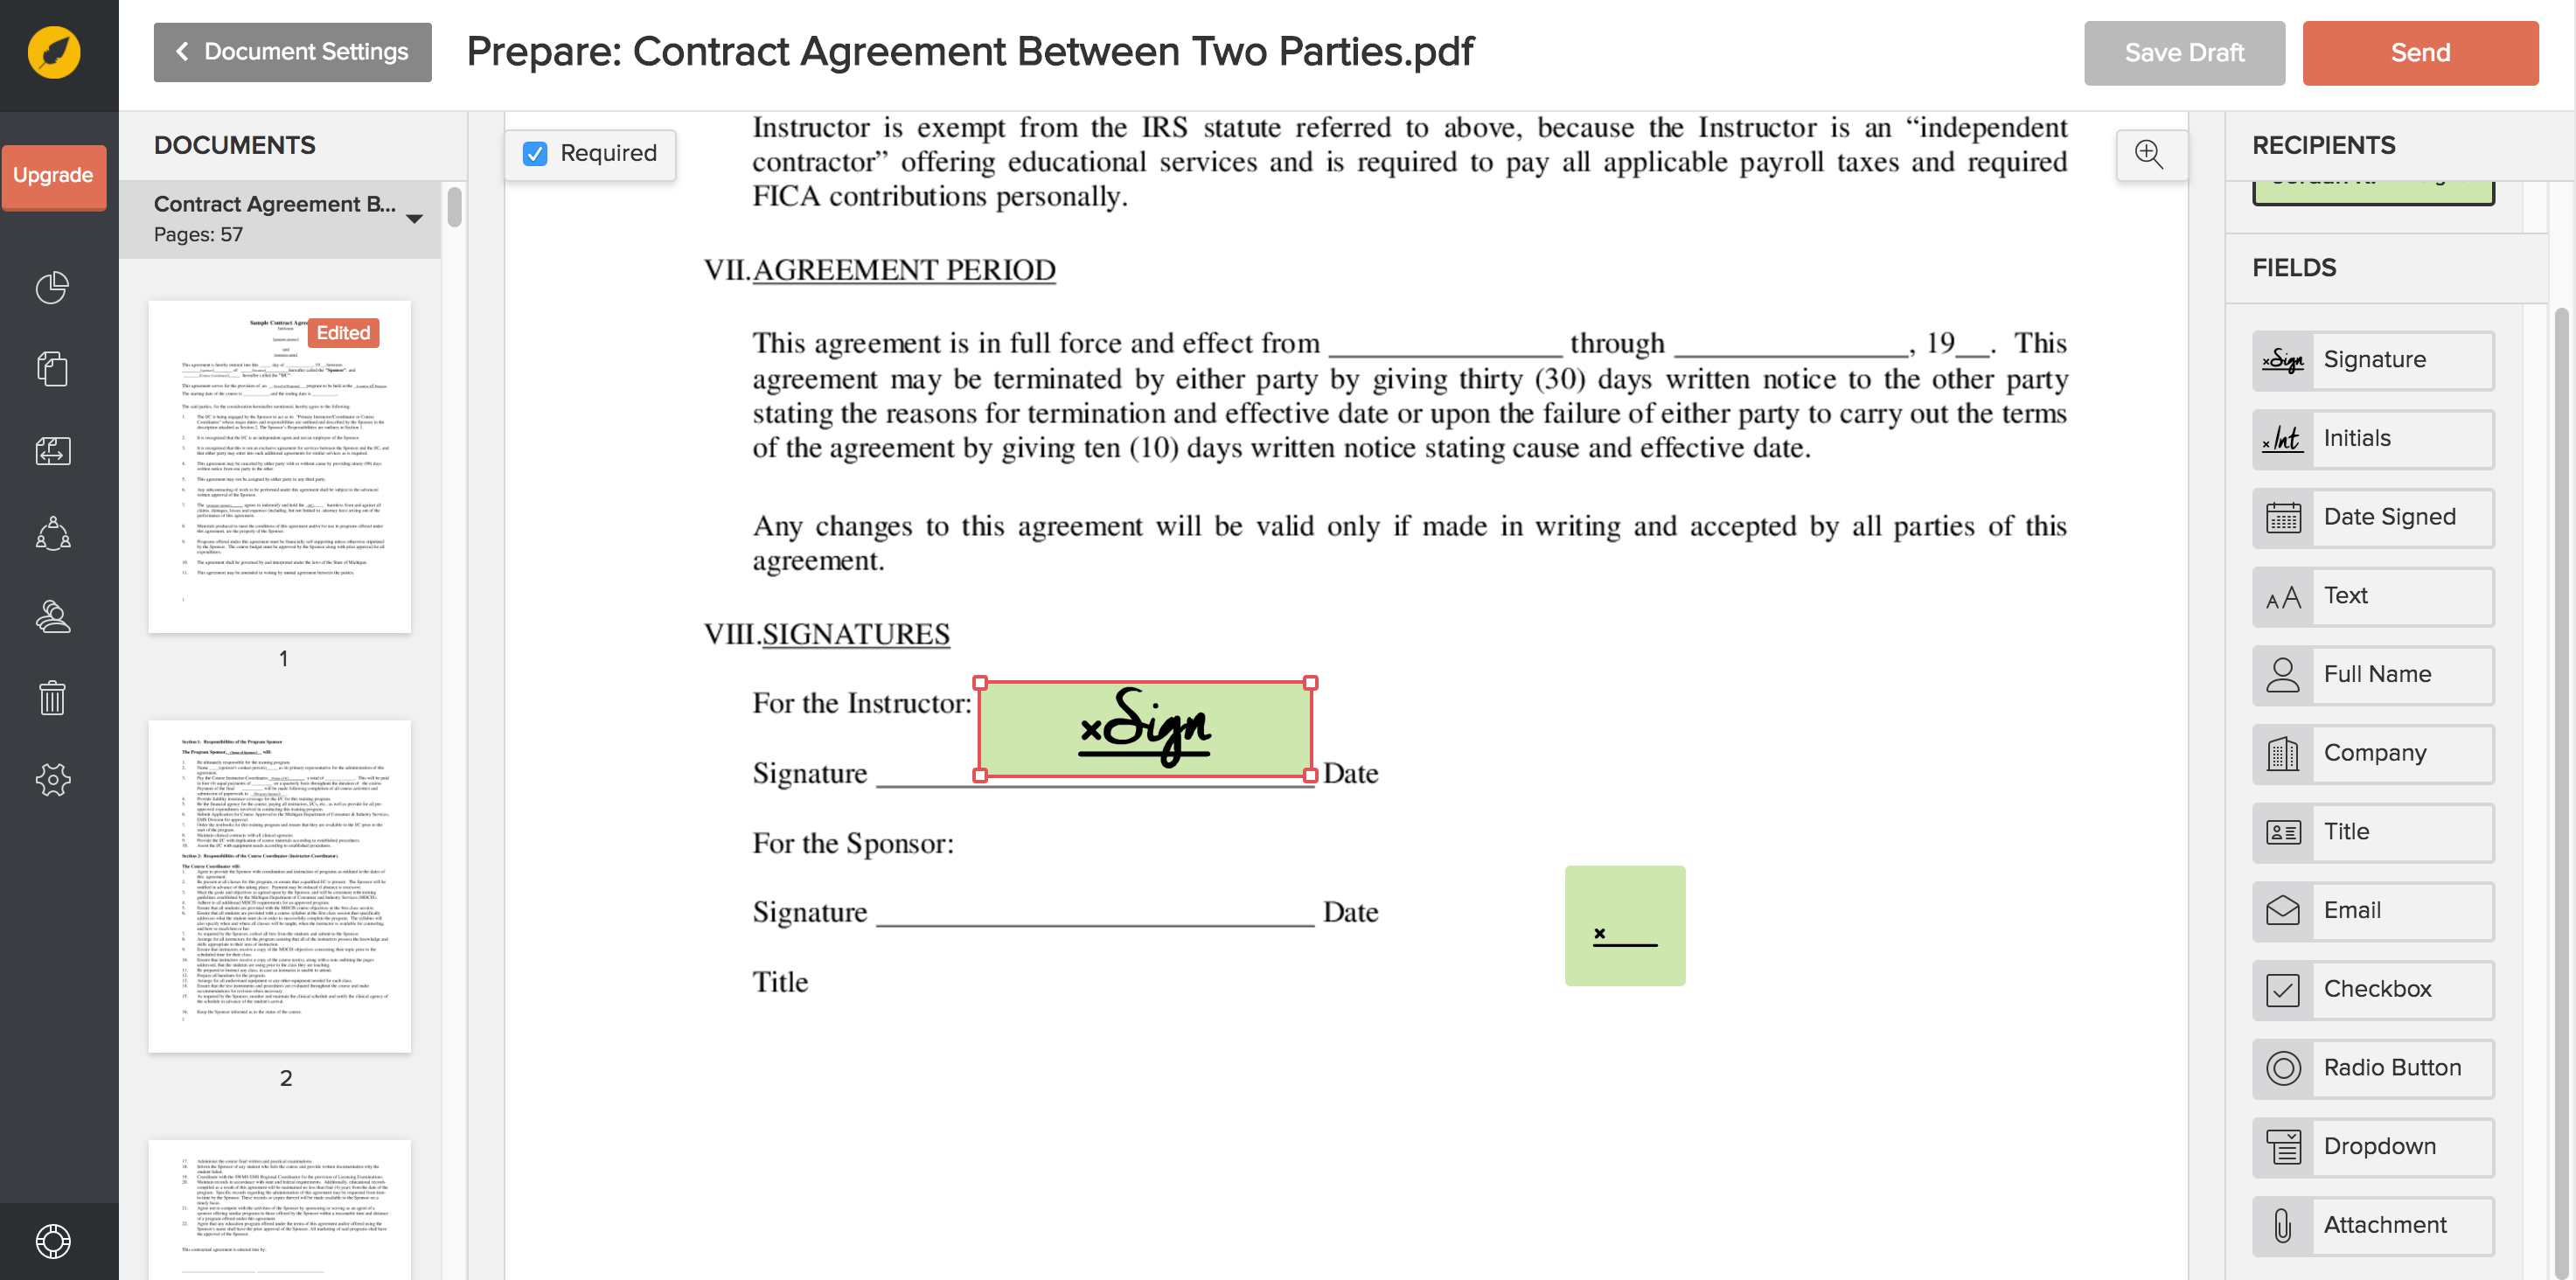 Eversign Makes Legally Binding Digital Signatures Online And In - Legally binding document